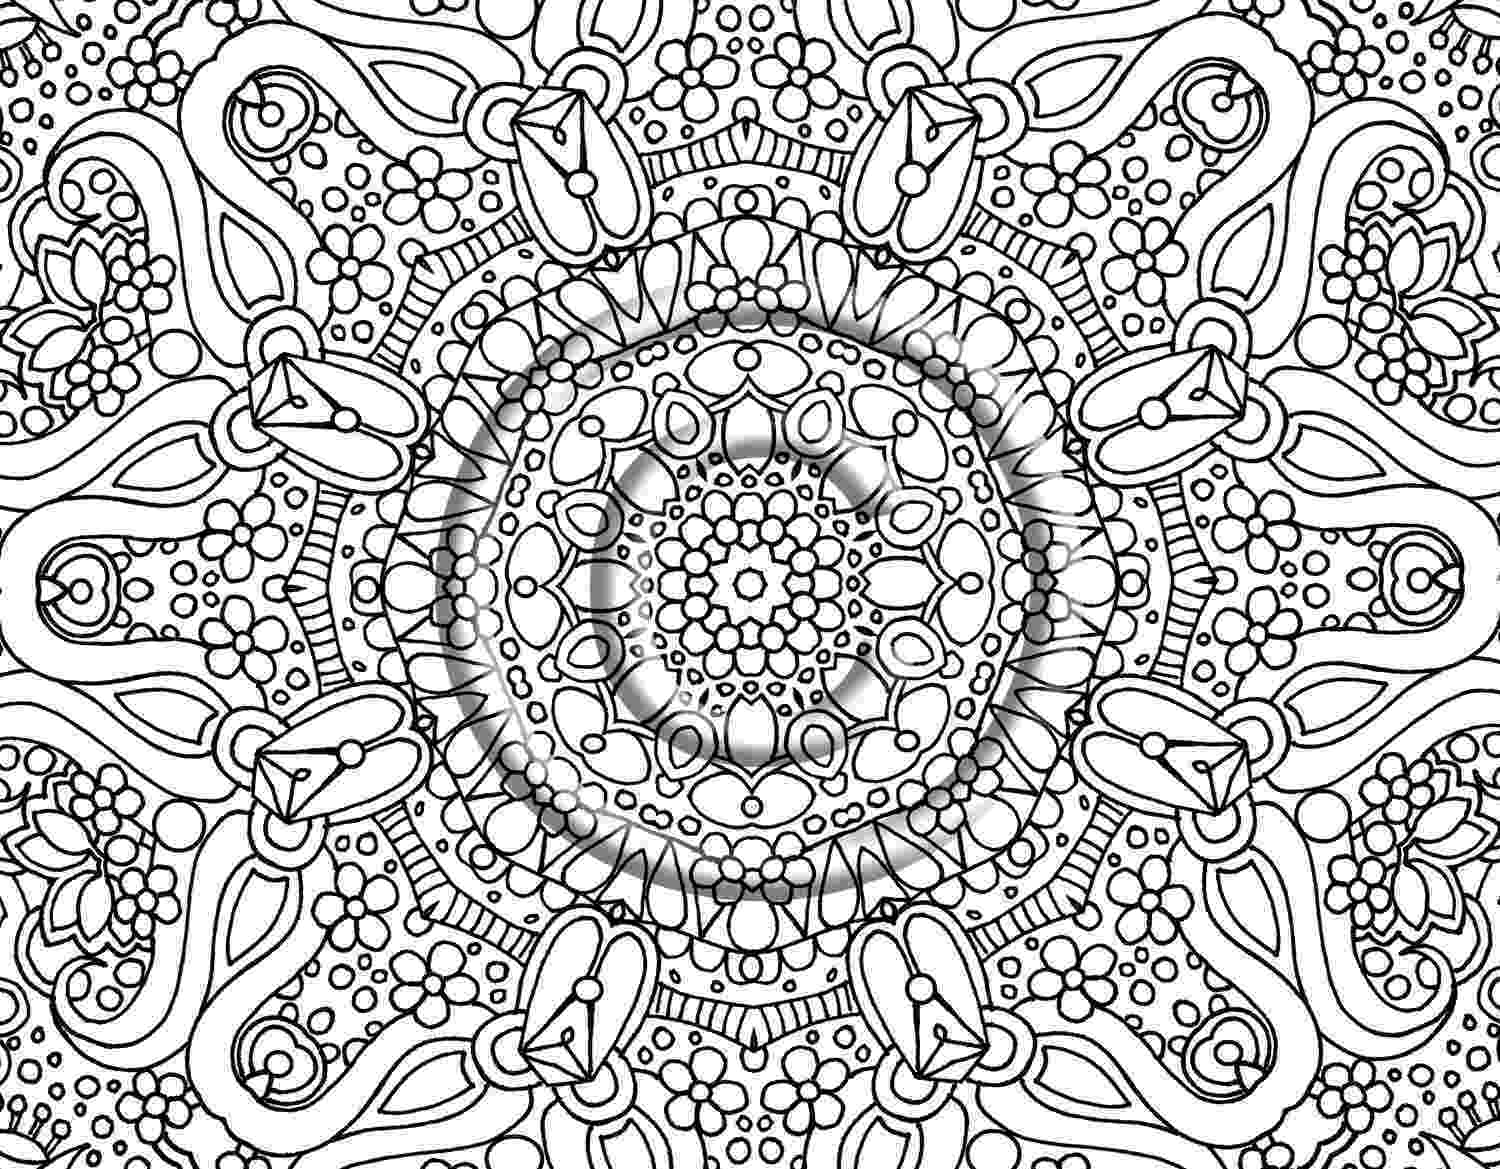 coloring pages for adults patterns colouring designs thelinoprinter pages for patterns adults coloring